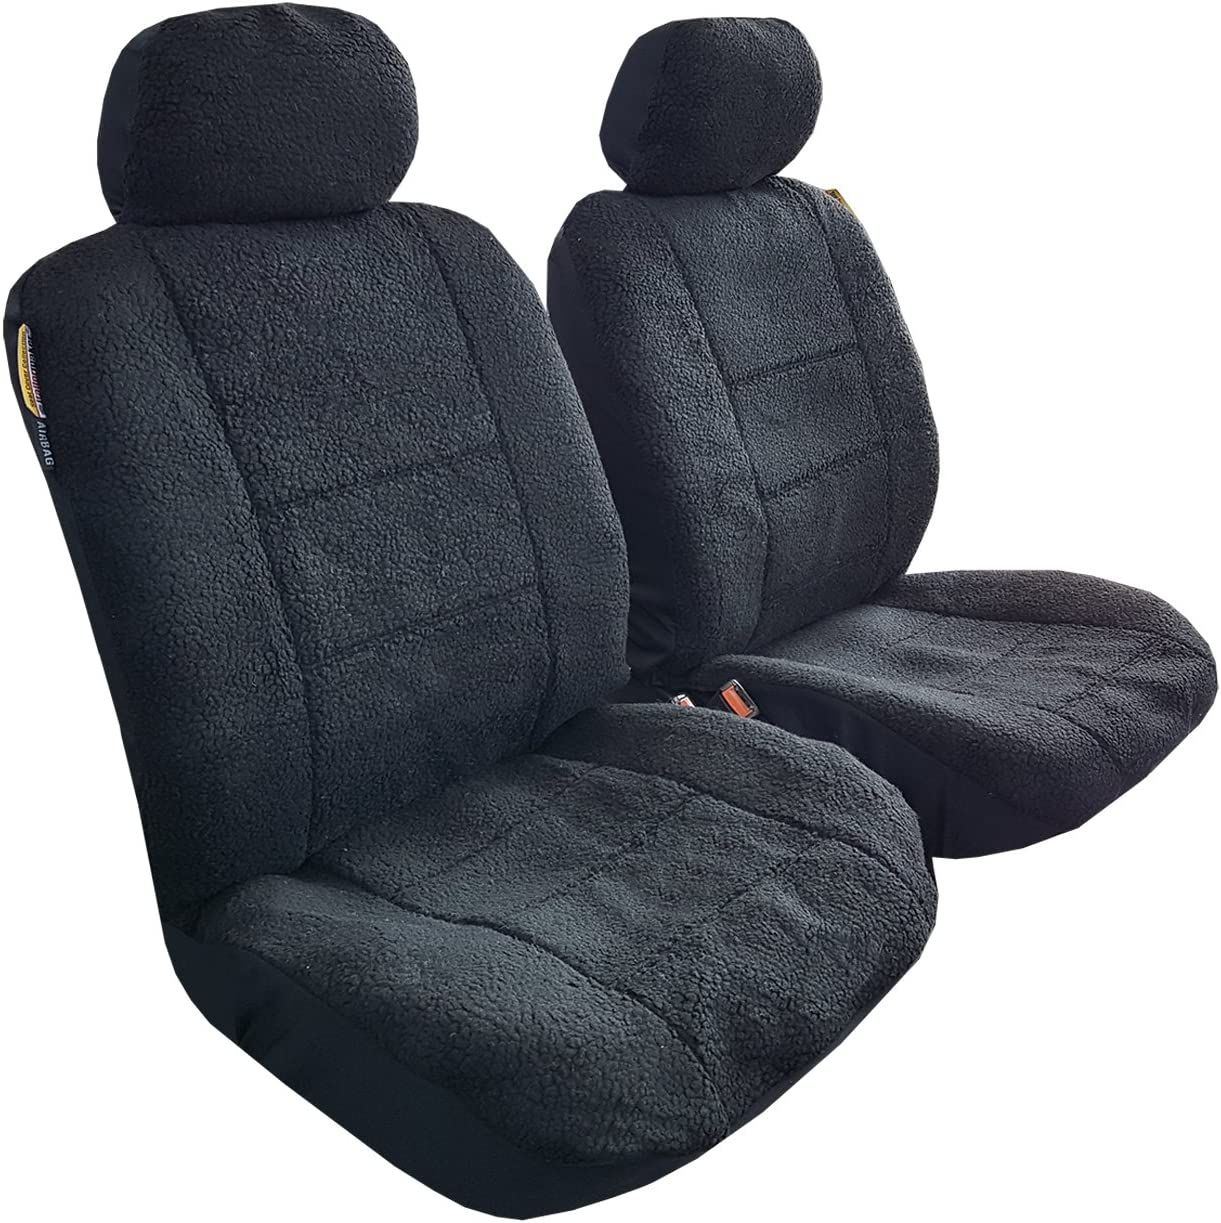 12V 2PCs Heated Car Seat Cover Pad Front Seat Winter Warm Cushion Velvet Thicken